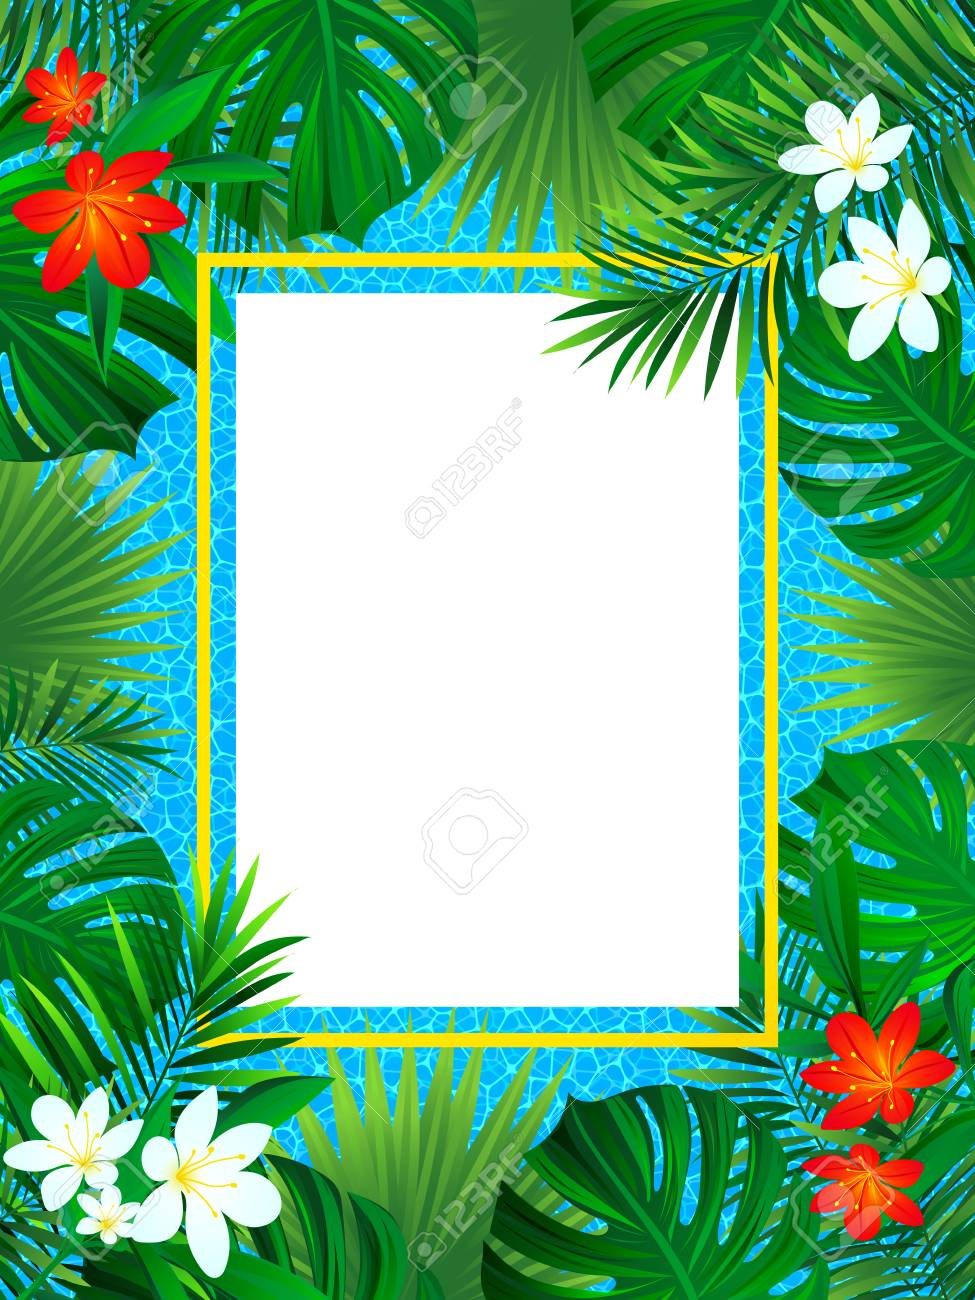 Tropical Flowers Frame Tropic Poster Vector Illustration 975x1300